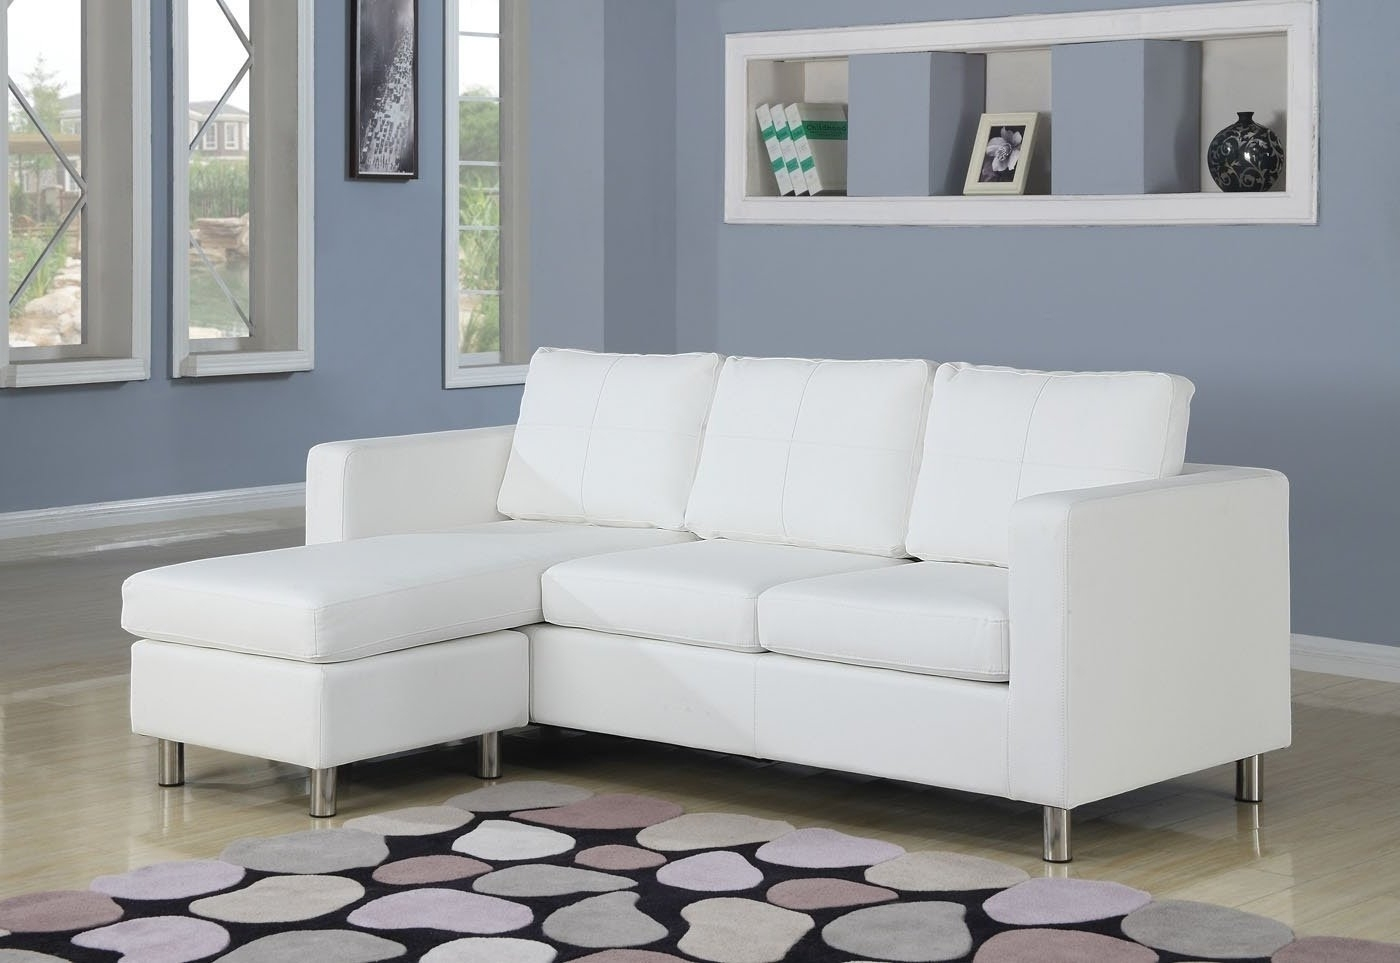 Sectional Sleeper Sofa And Recliner – Youtube Pertaining To Apartment Sectional Sofas With Chaise (View 14 of 15)